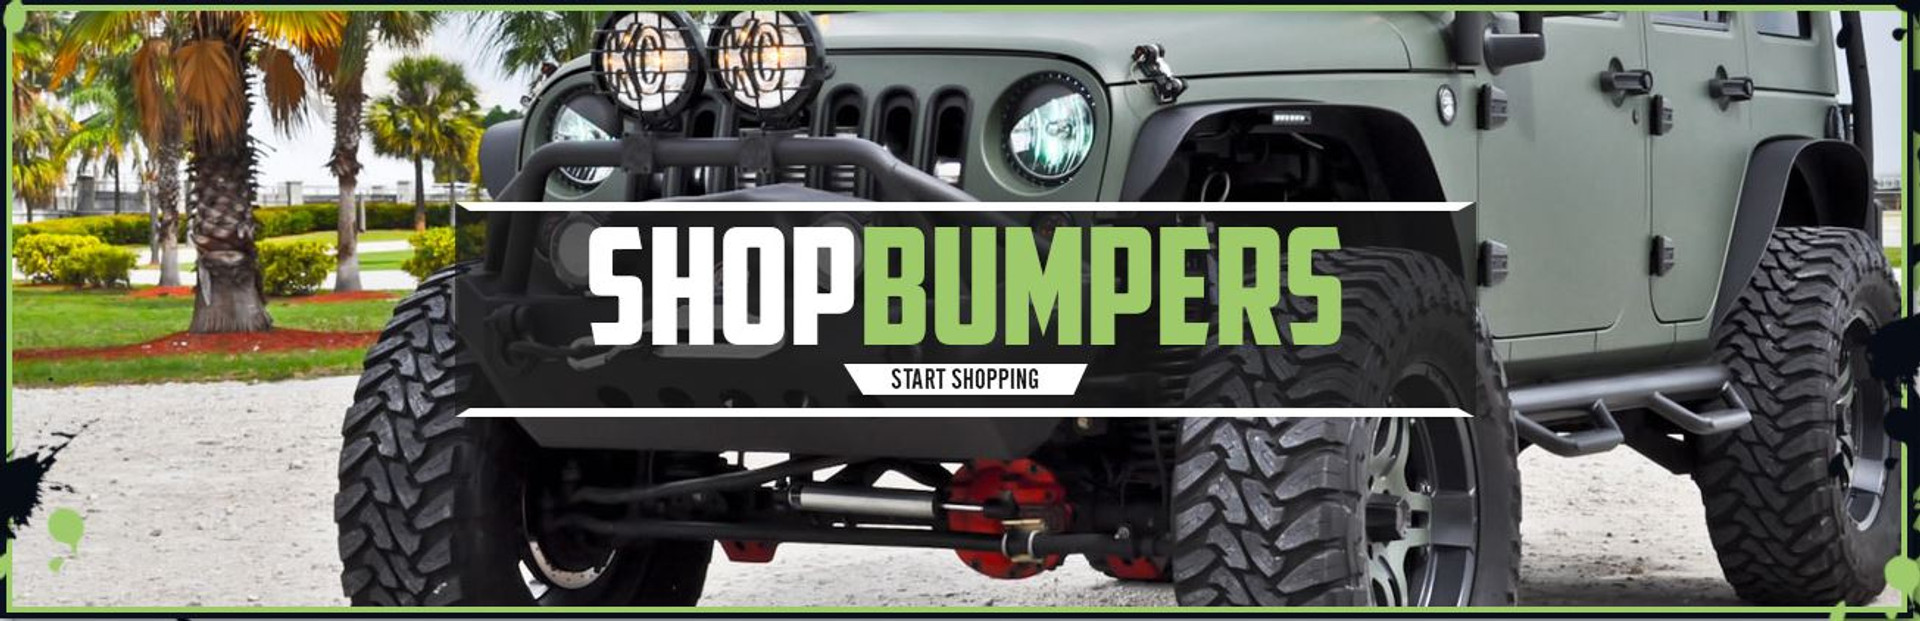 JeepHut Offroad - Jeep parts and accessories Headquaters ... on jeep wrangler speaker, jeep wrangler fog light bulb, jeep wrangler trailer hitch, jeep wrangler amplifier bypass, jeep wrangler subwoofer, jeep wrangler bluetooth stereo, jeep wrangler reverse camera, jeep wrangler wiring diagram, radio wiring harness, jeep wrangler pioneer, jeep wrangler antenna, jeep wrangler aftermarket stereo, jeep tj stereo, jeep wrangler dvd player, jeep wrangler led park lights, jeep wrangler engine oil filter, jeep wrangler tweeter, jeep wrangler alternator, jeep wrangler ignition lock, jeep wrangler fuse,